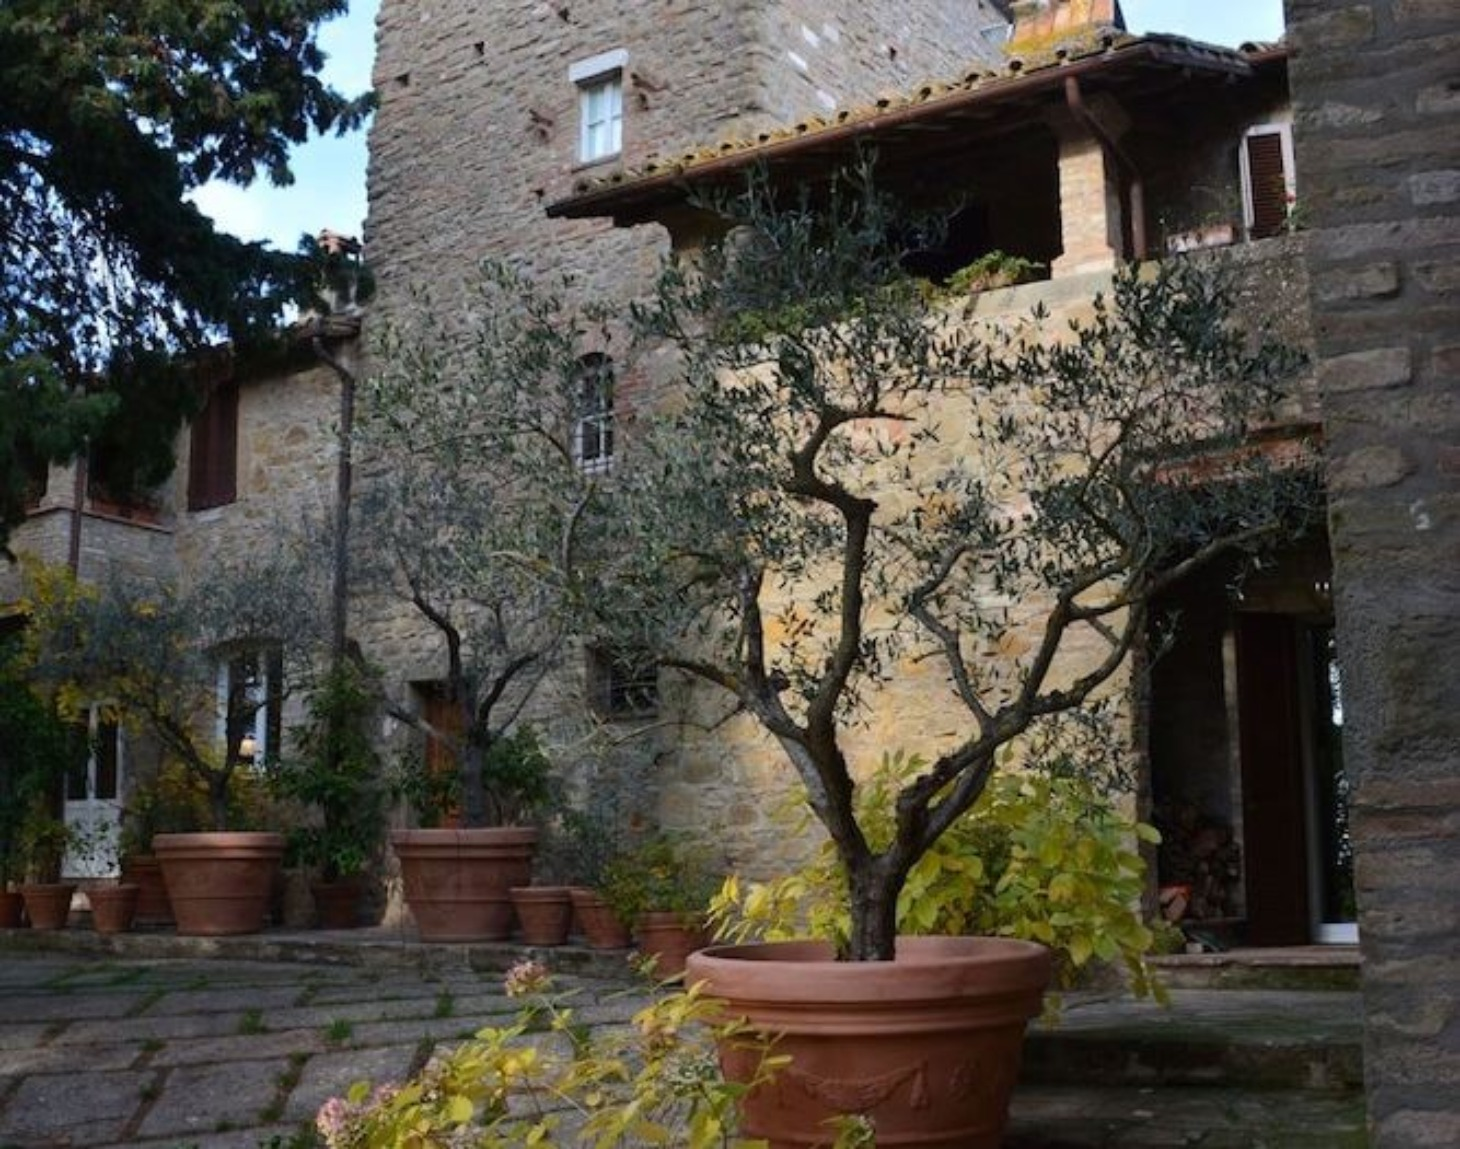 A tree in front of a brick building at Relais Casamassima.